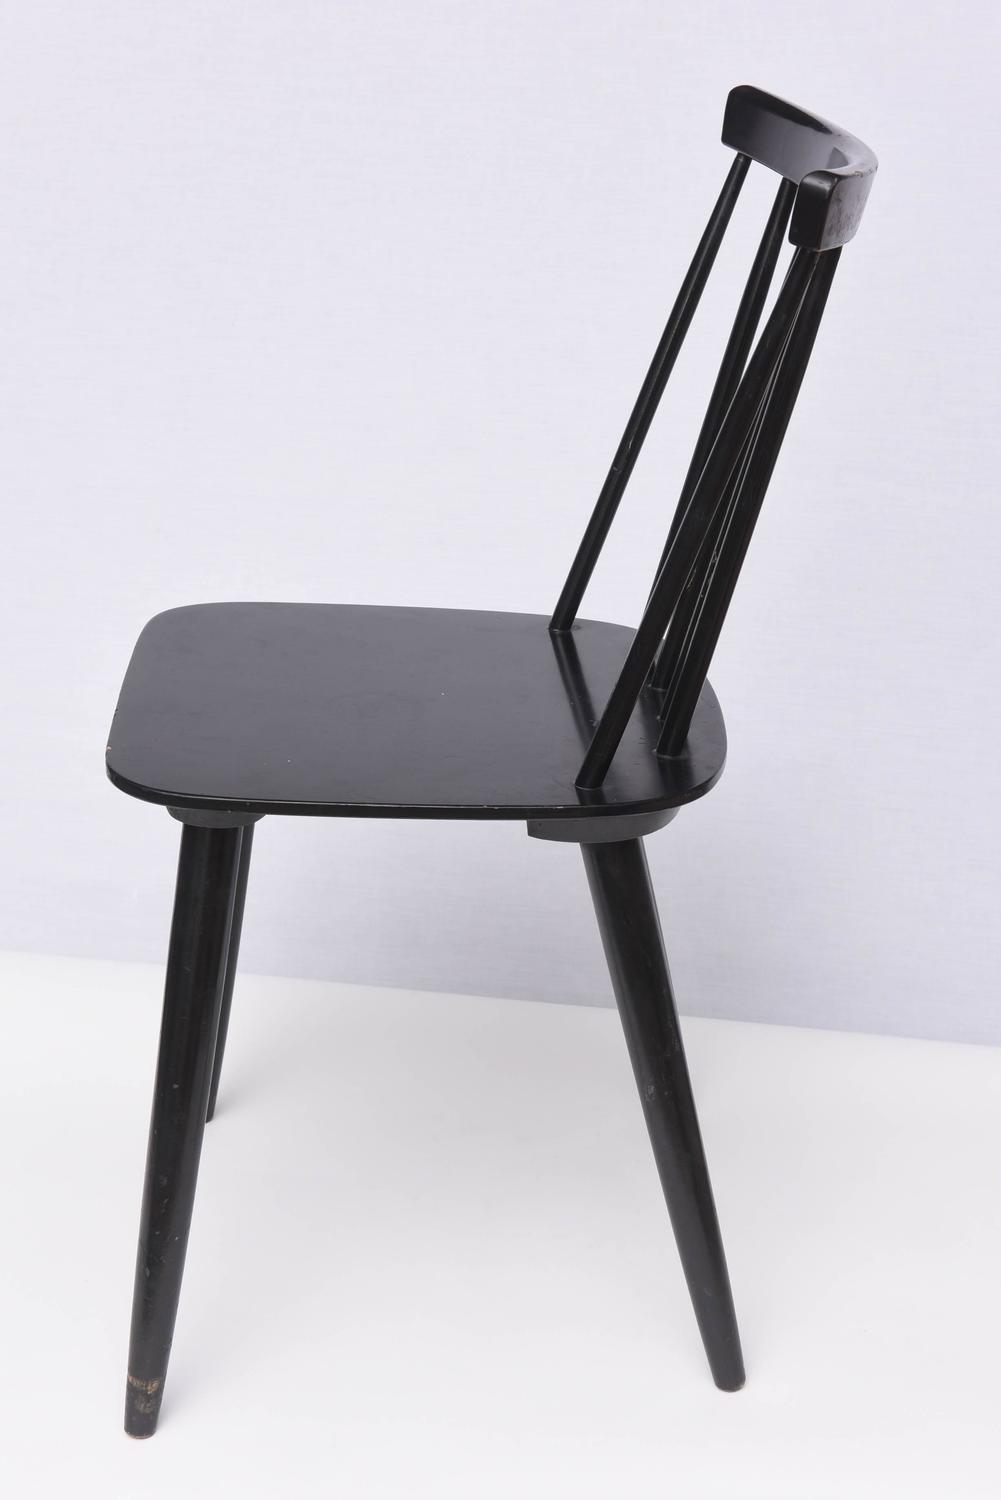 Set Of Three Varjonen Wooden Chairs In Black Lacquer 1950s Finland At 1stdibs